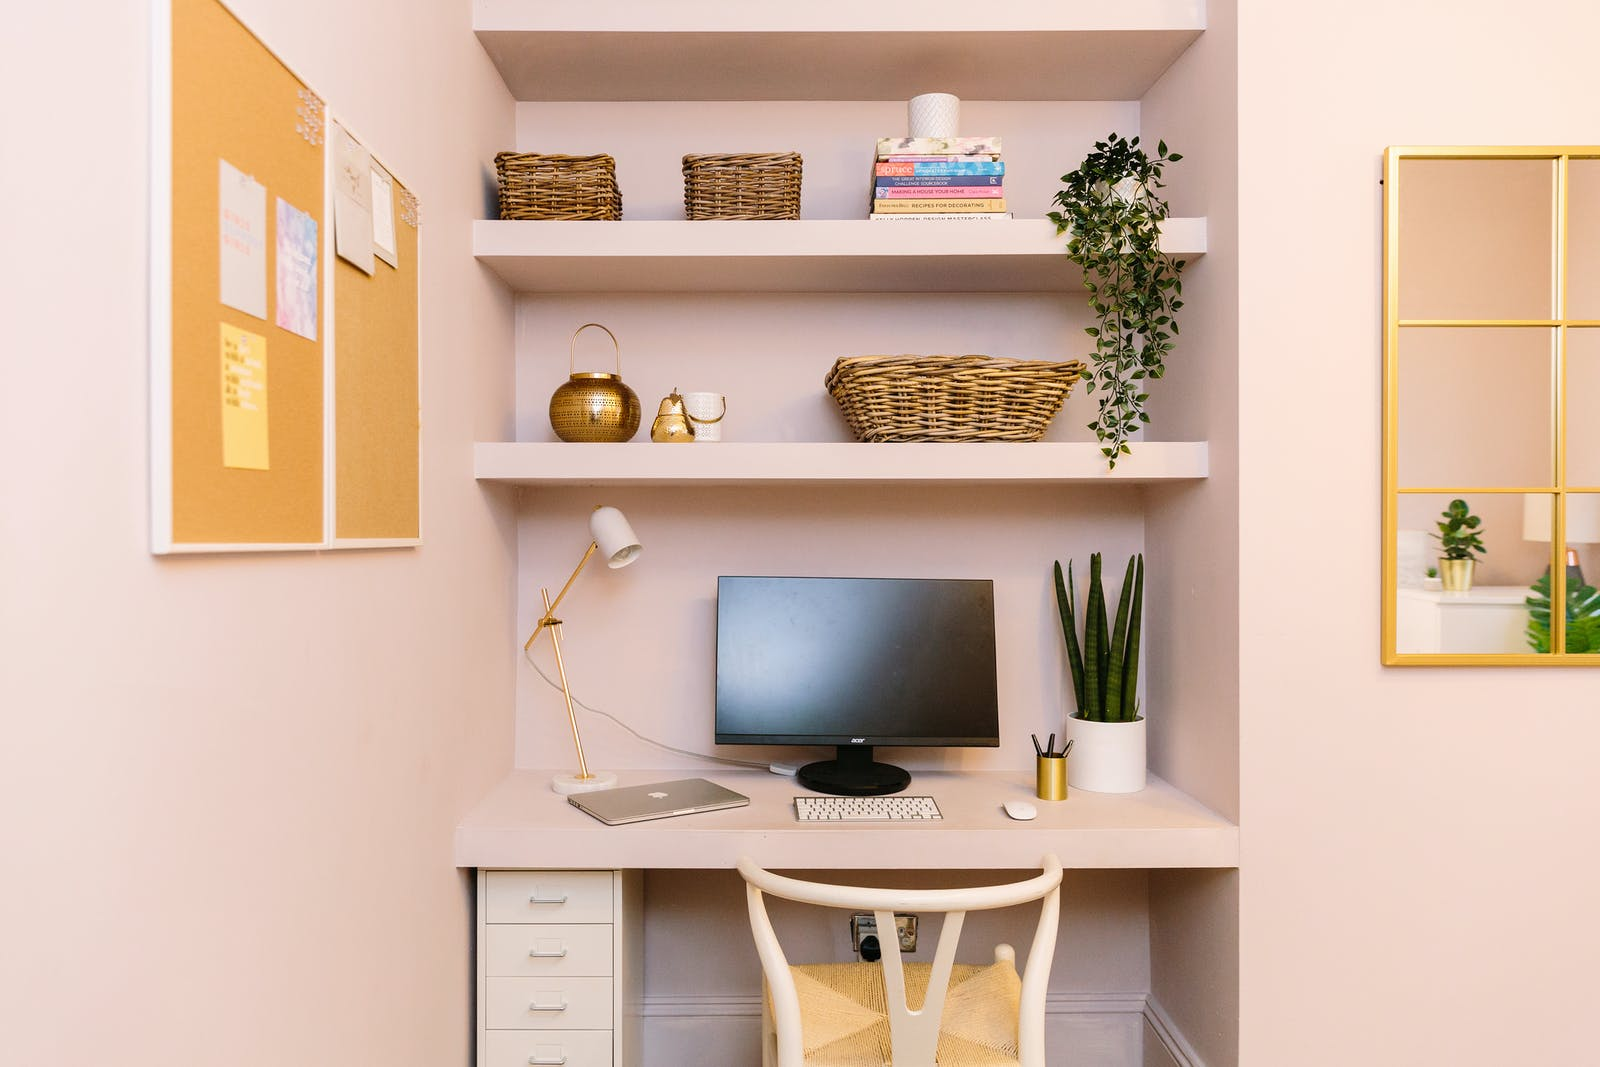 Neat, minimal home office with plants and pink walls